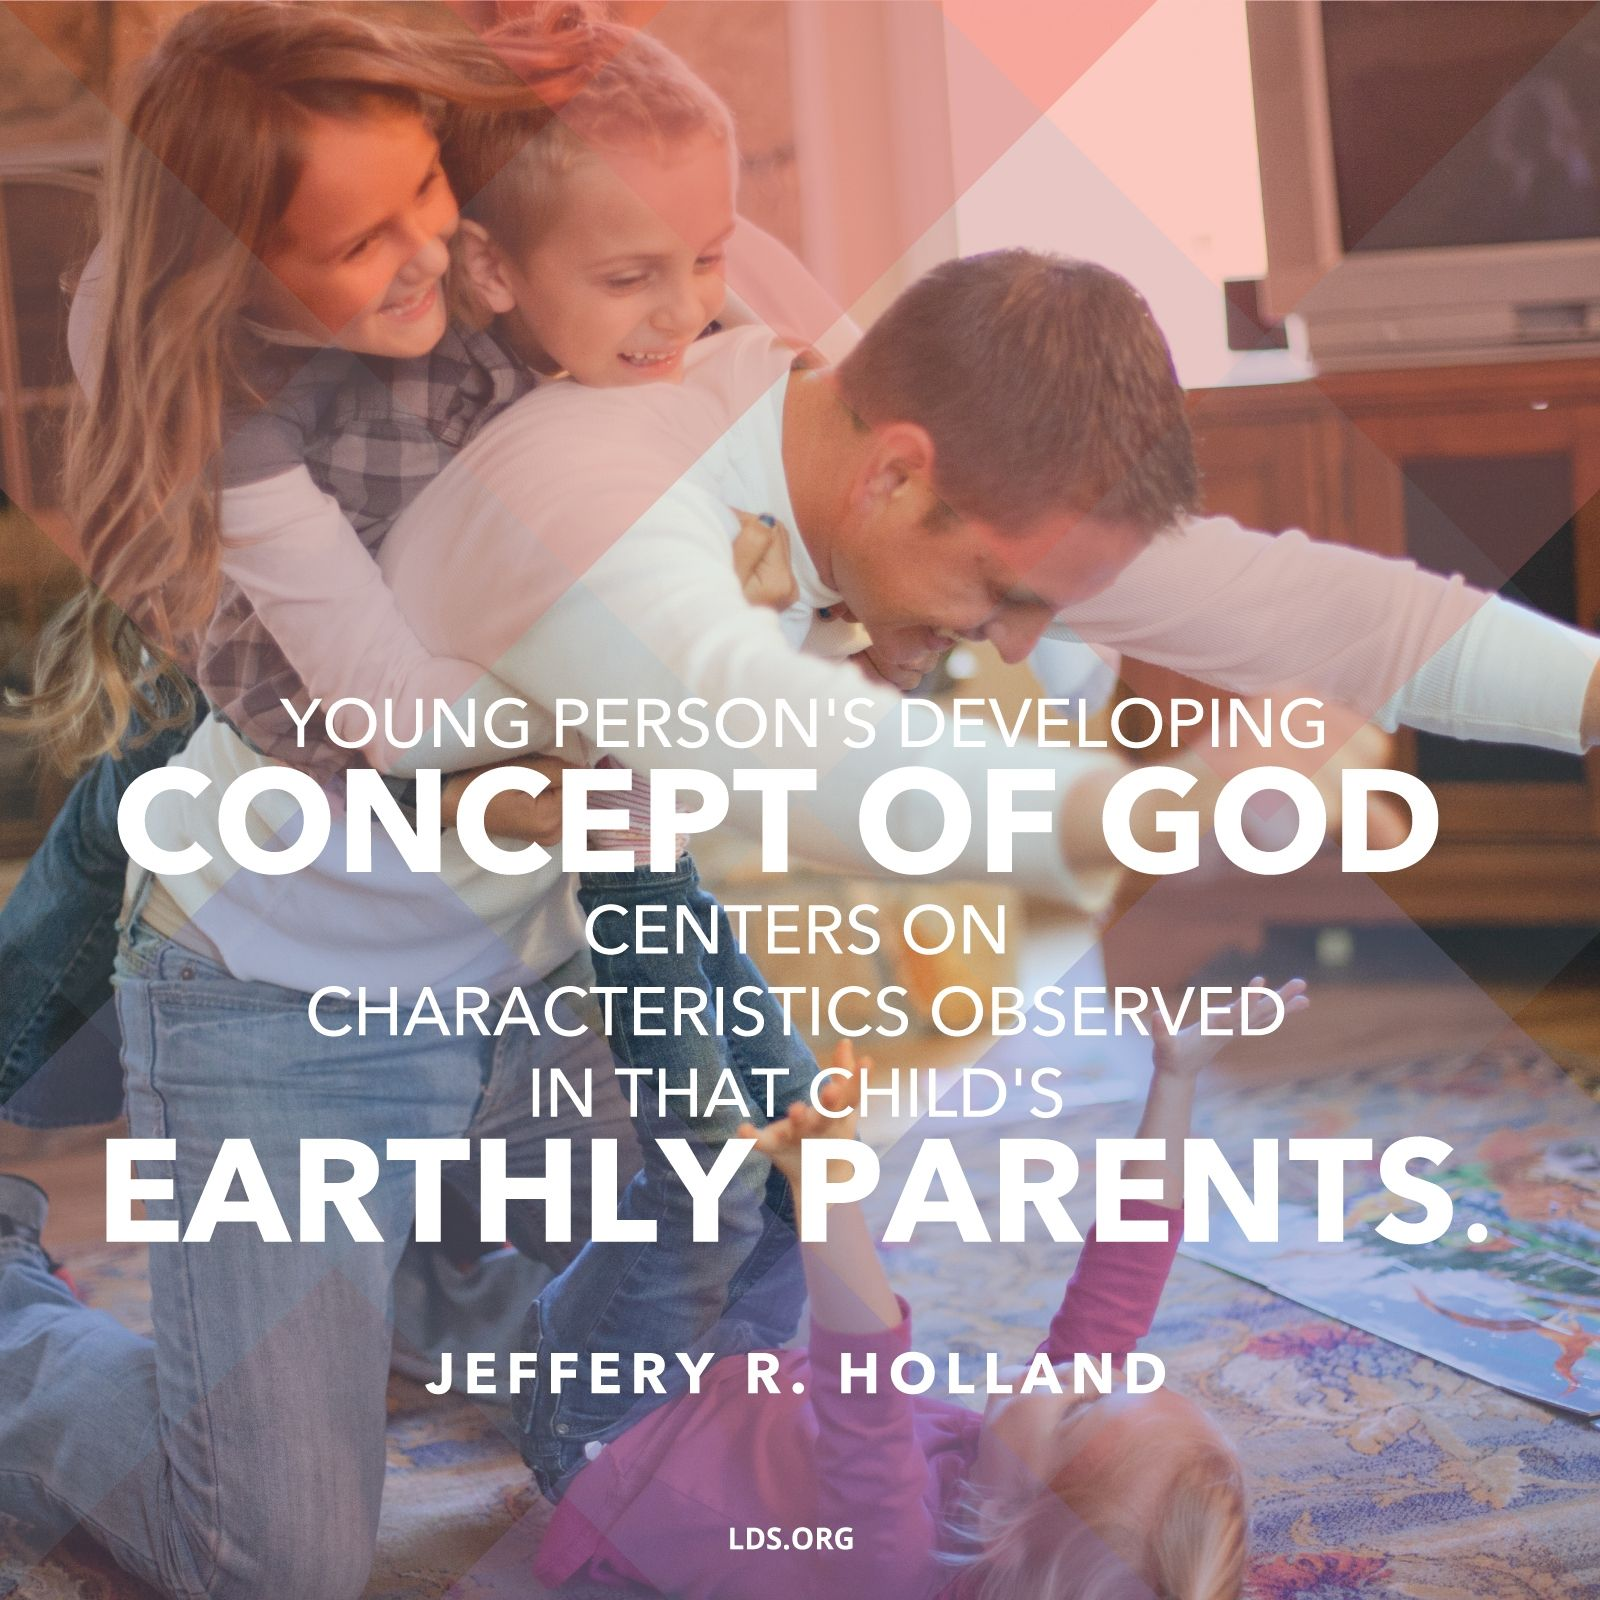 Earthly Parents